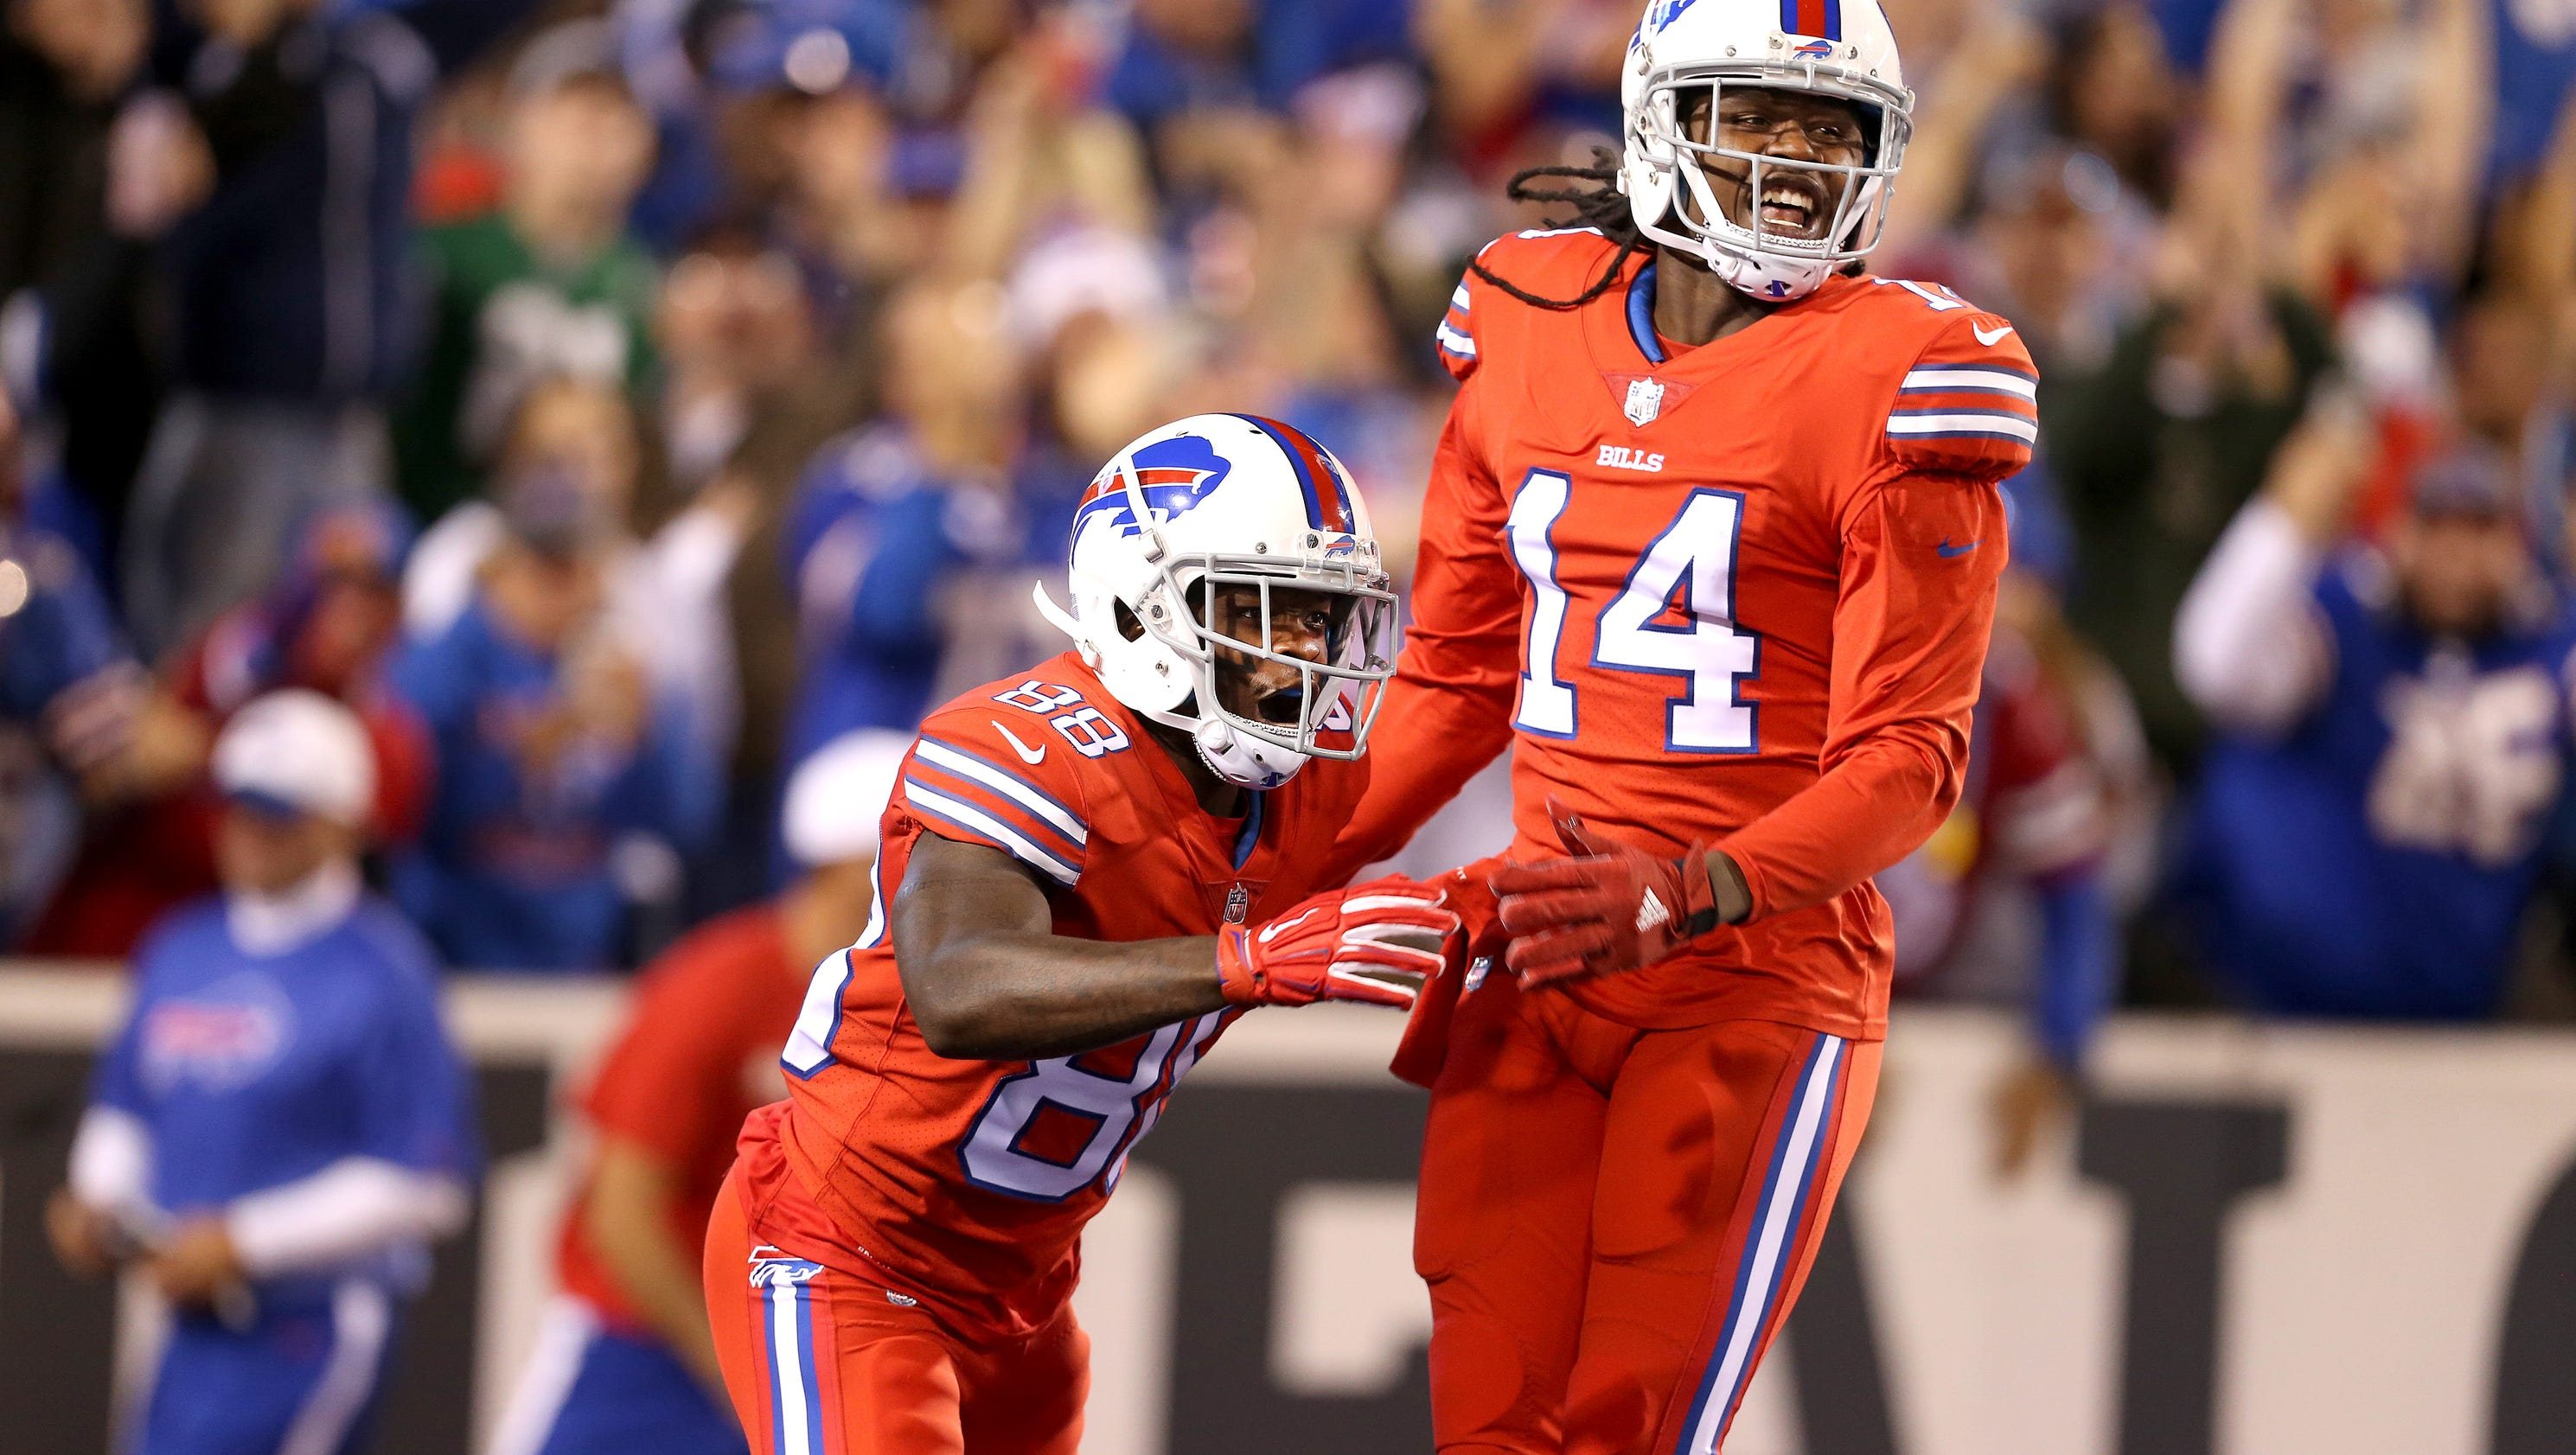 Sammy Watkins could miss Cardinals game with foot injury